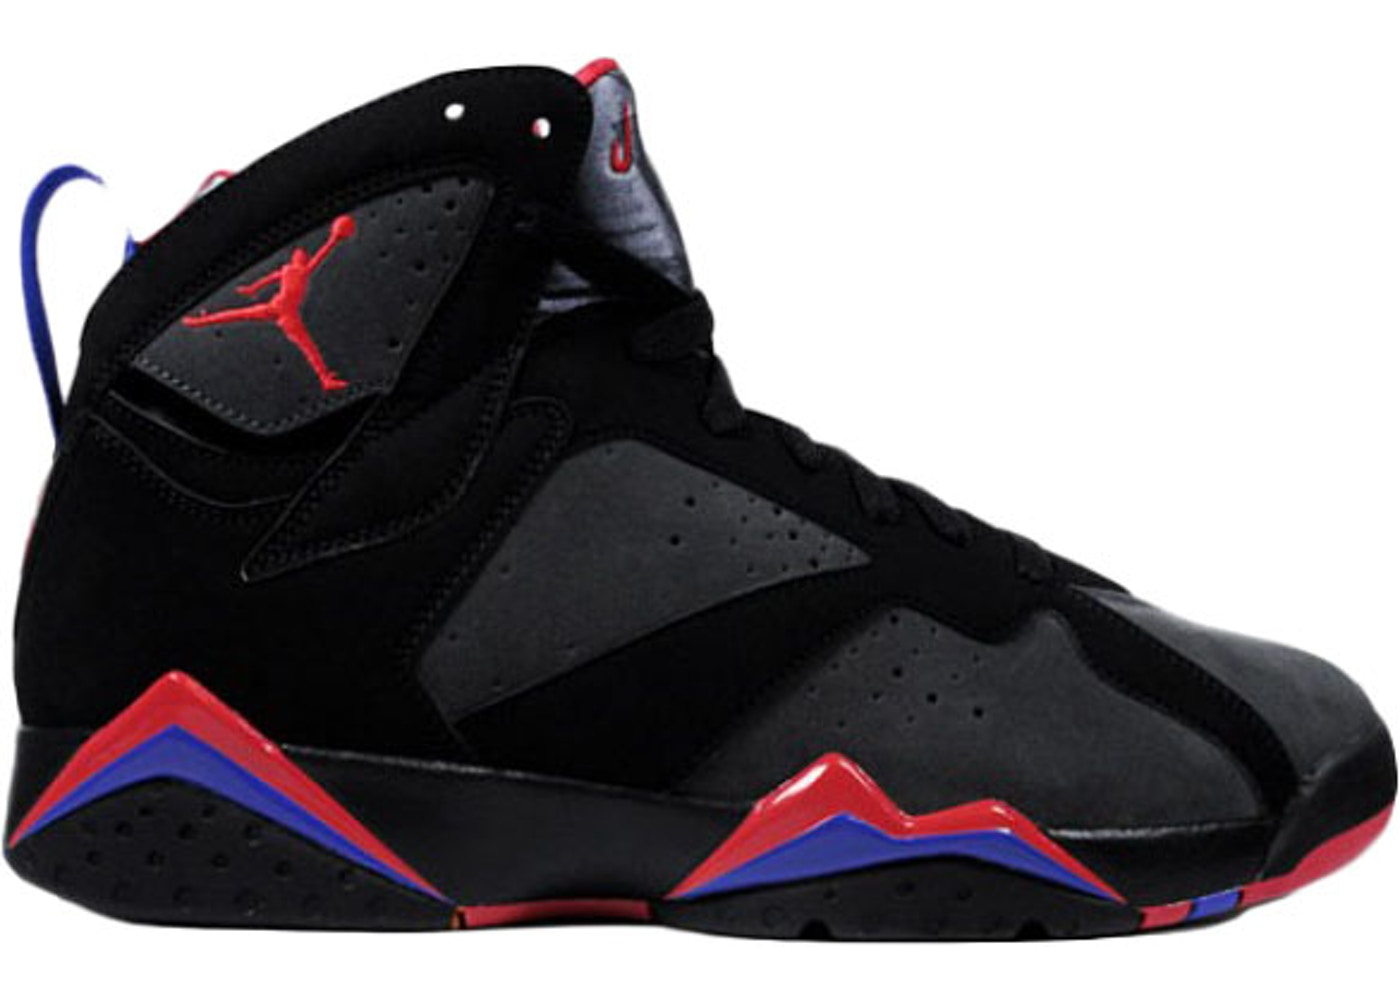 huge discount 8a27a 1428c Jordan 7 Retro DMP Raptors (GS) - 304774-041